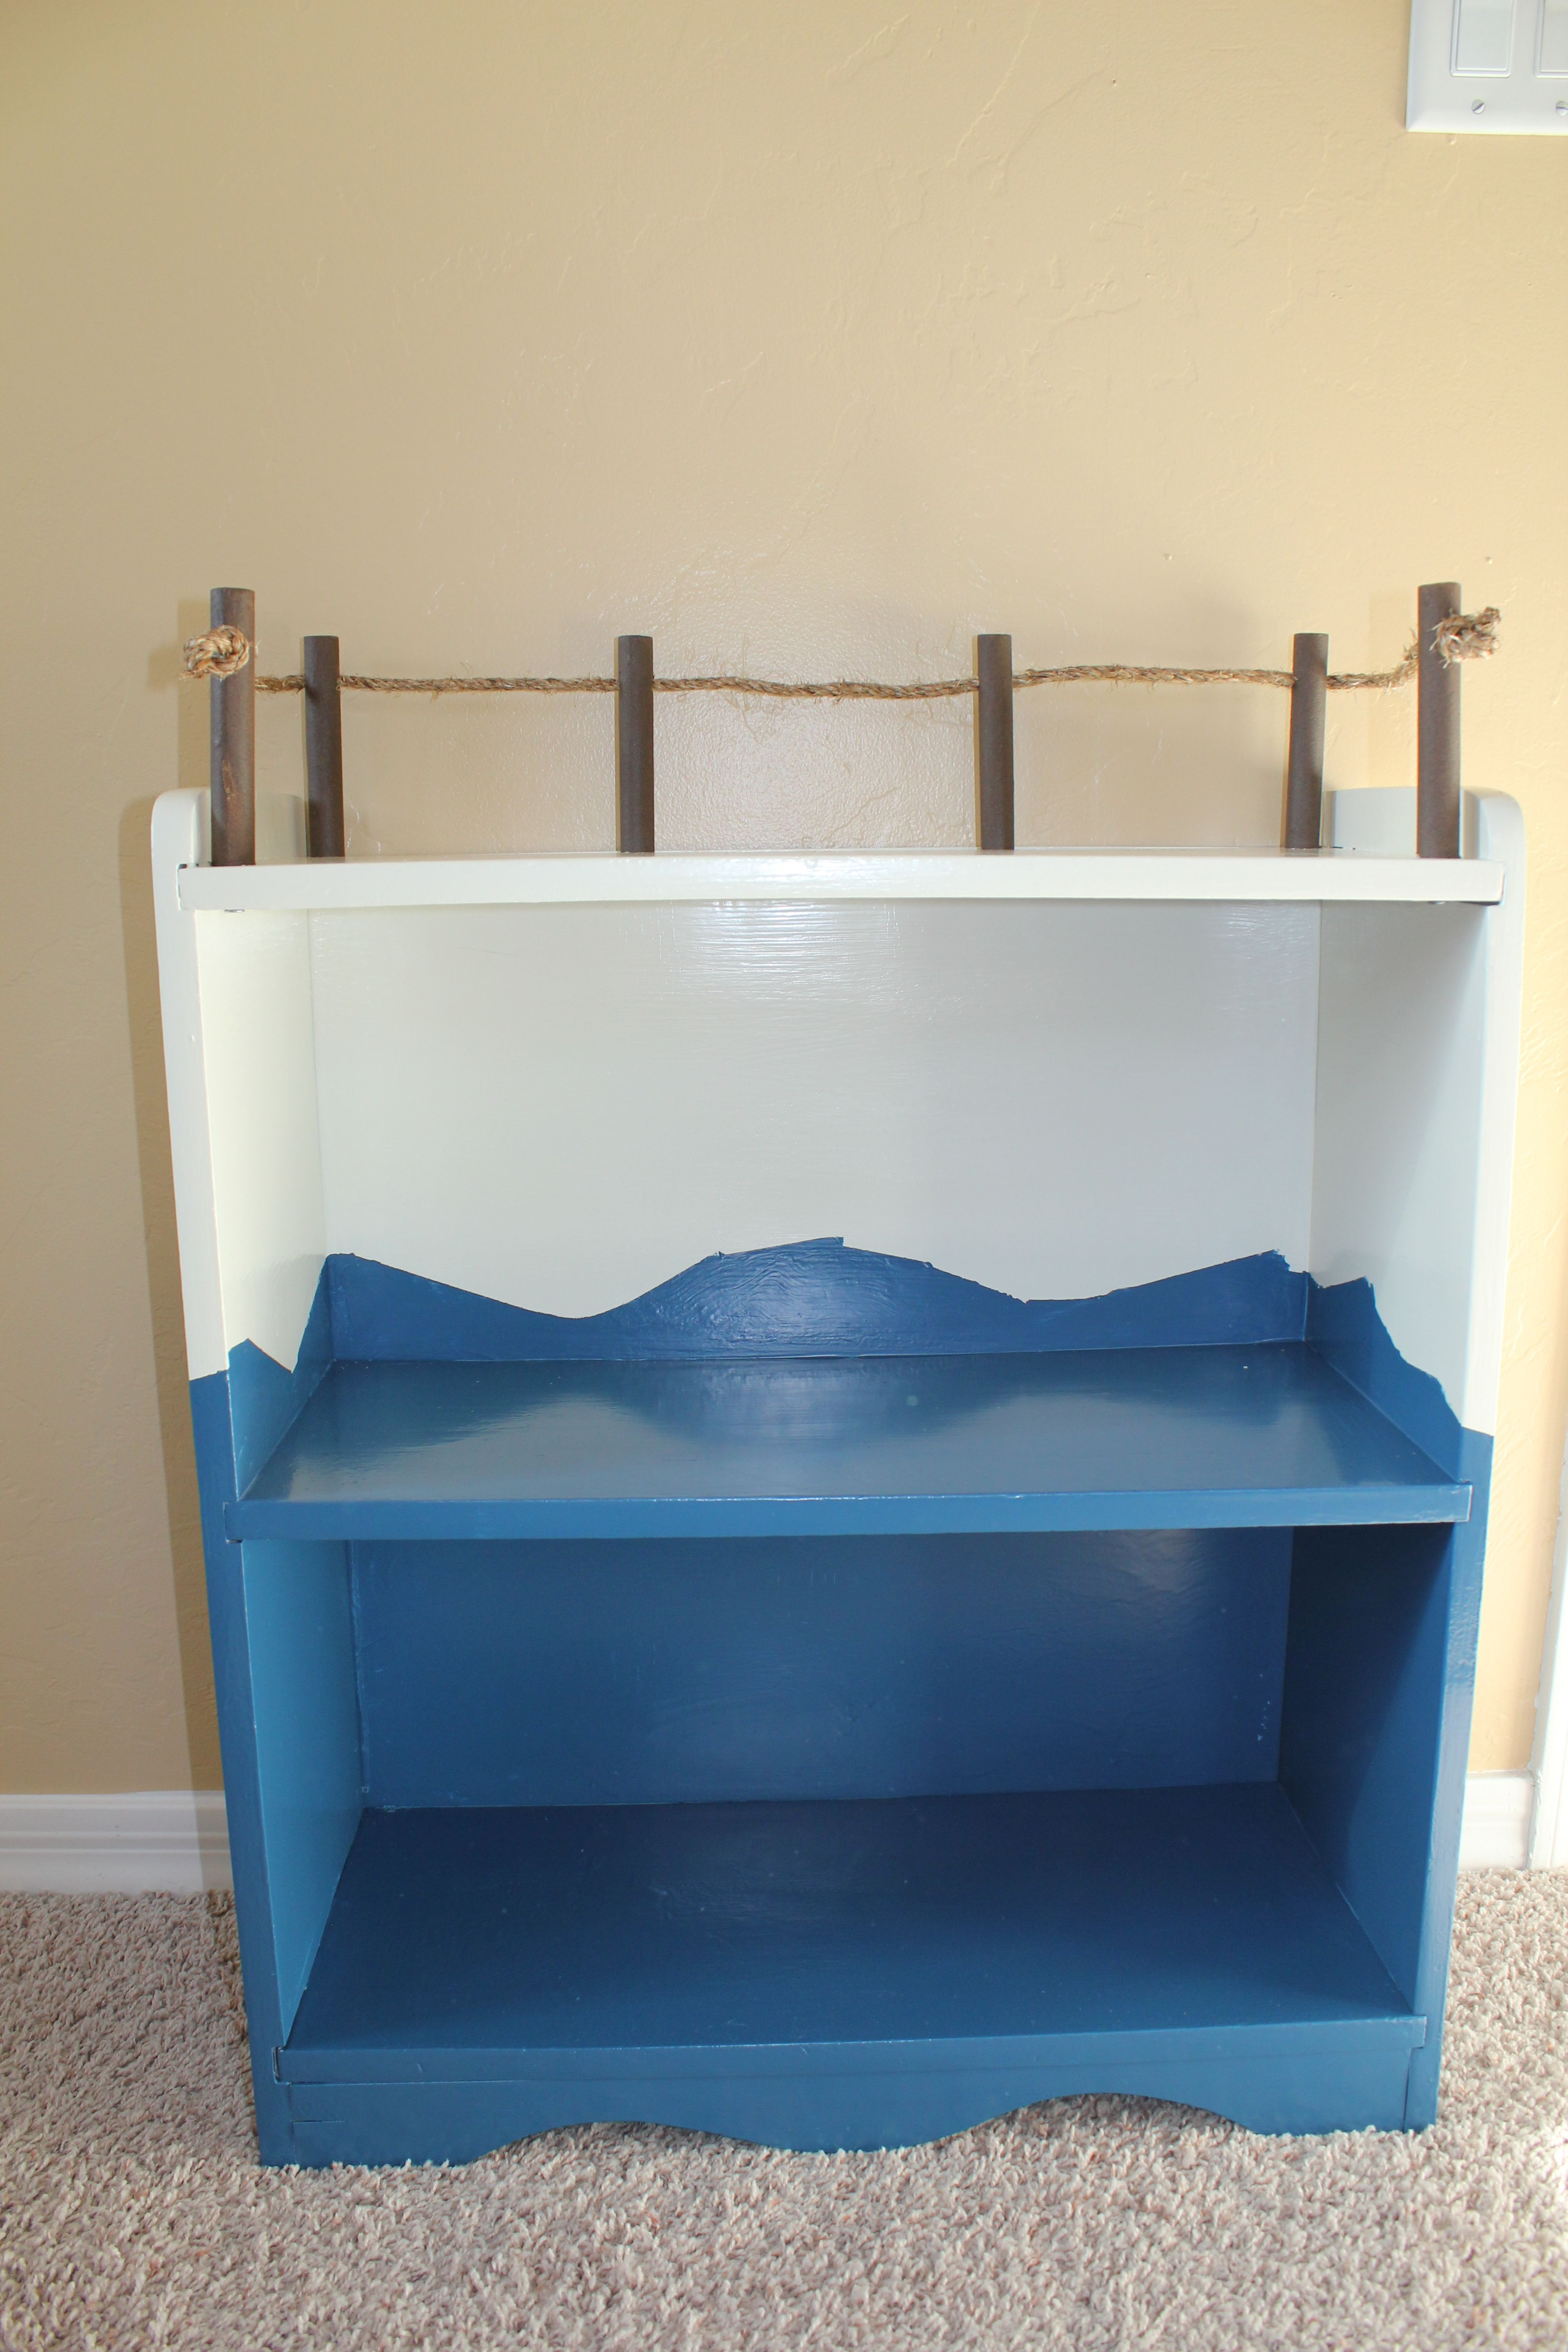 Bought Bookshelf At Rummage Sale Husband Took Over Projectsanded It